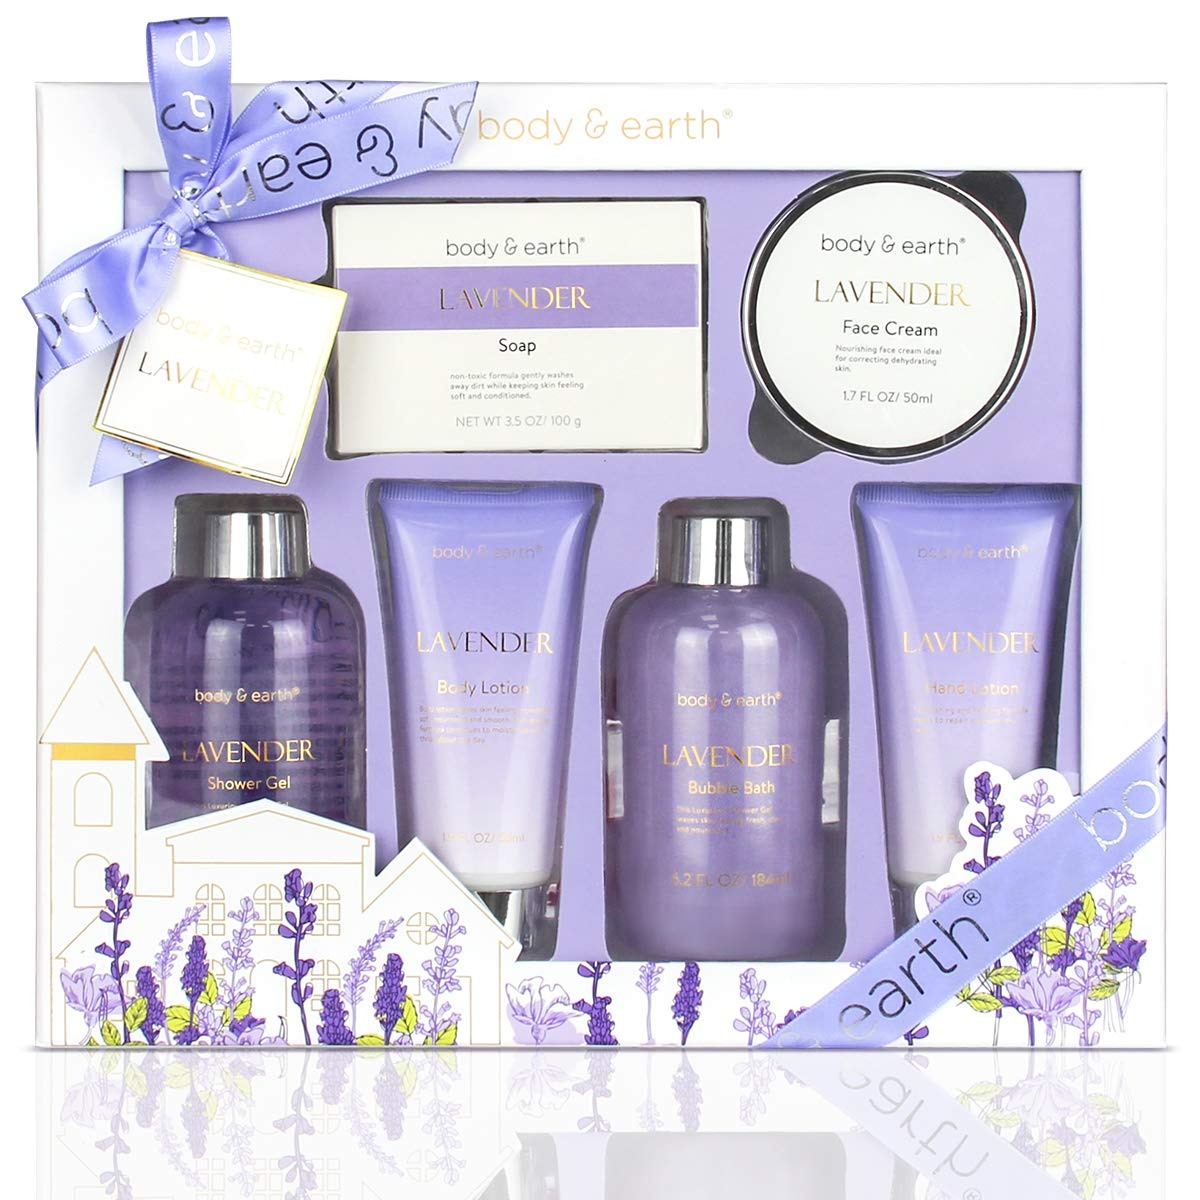 Bath and Body Gift Set - Luxurious 6 Pcs Bath Kit for Women, Body & Earth Spa Set with Lavender Scent - Bubble Bath, Shower Gel, Hand & Face Cream, Body Lotion, Hand Soap, Perfect Gift Box for Women by BODY & EARTH